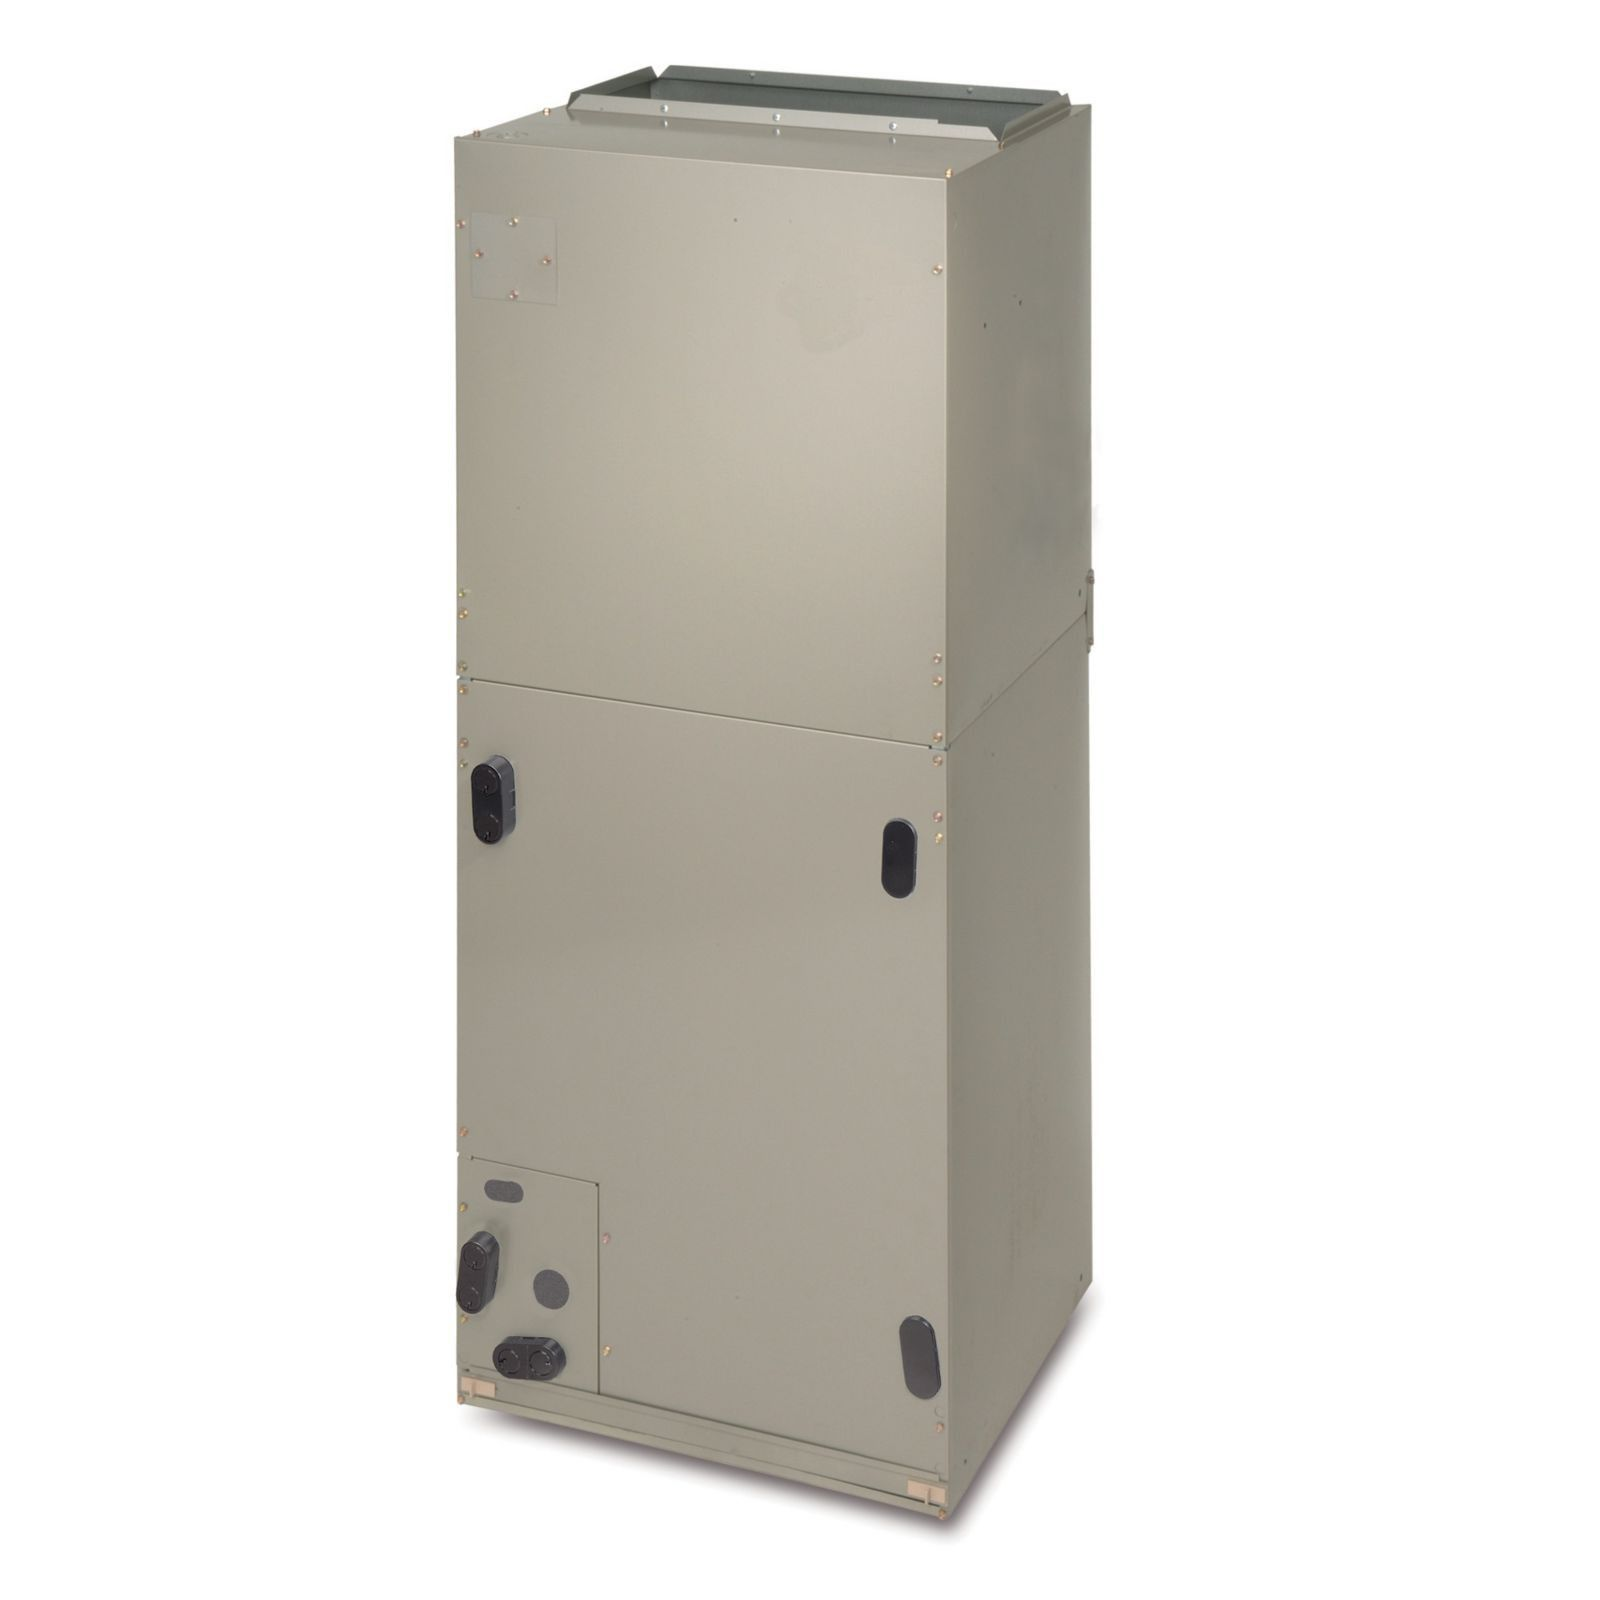 Residential Carrier Fan Coil Units 1 5 to 3 Ton | Carrier HVAC